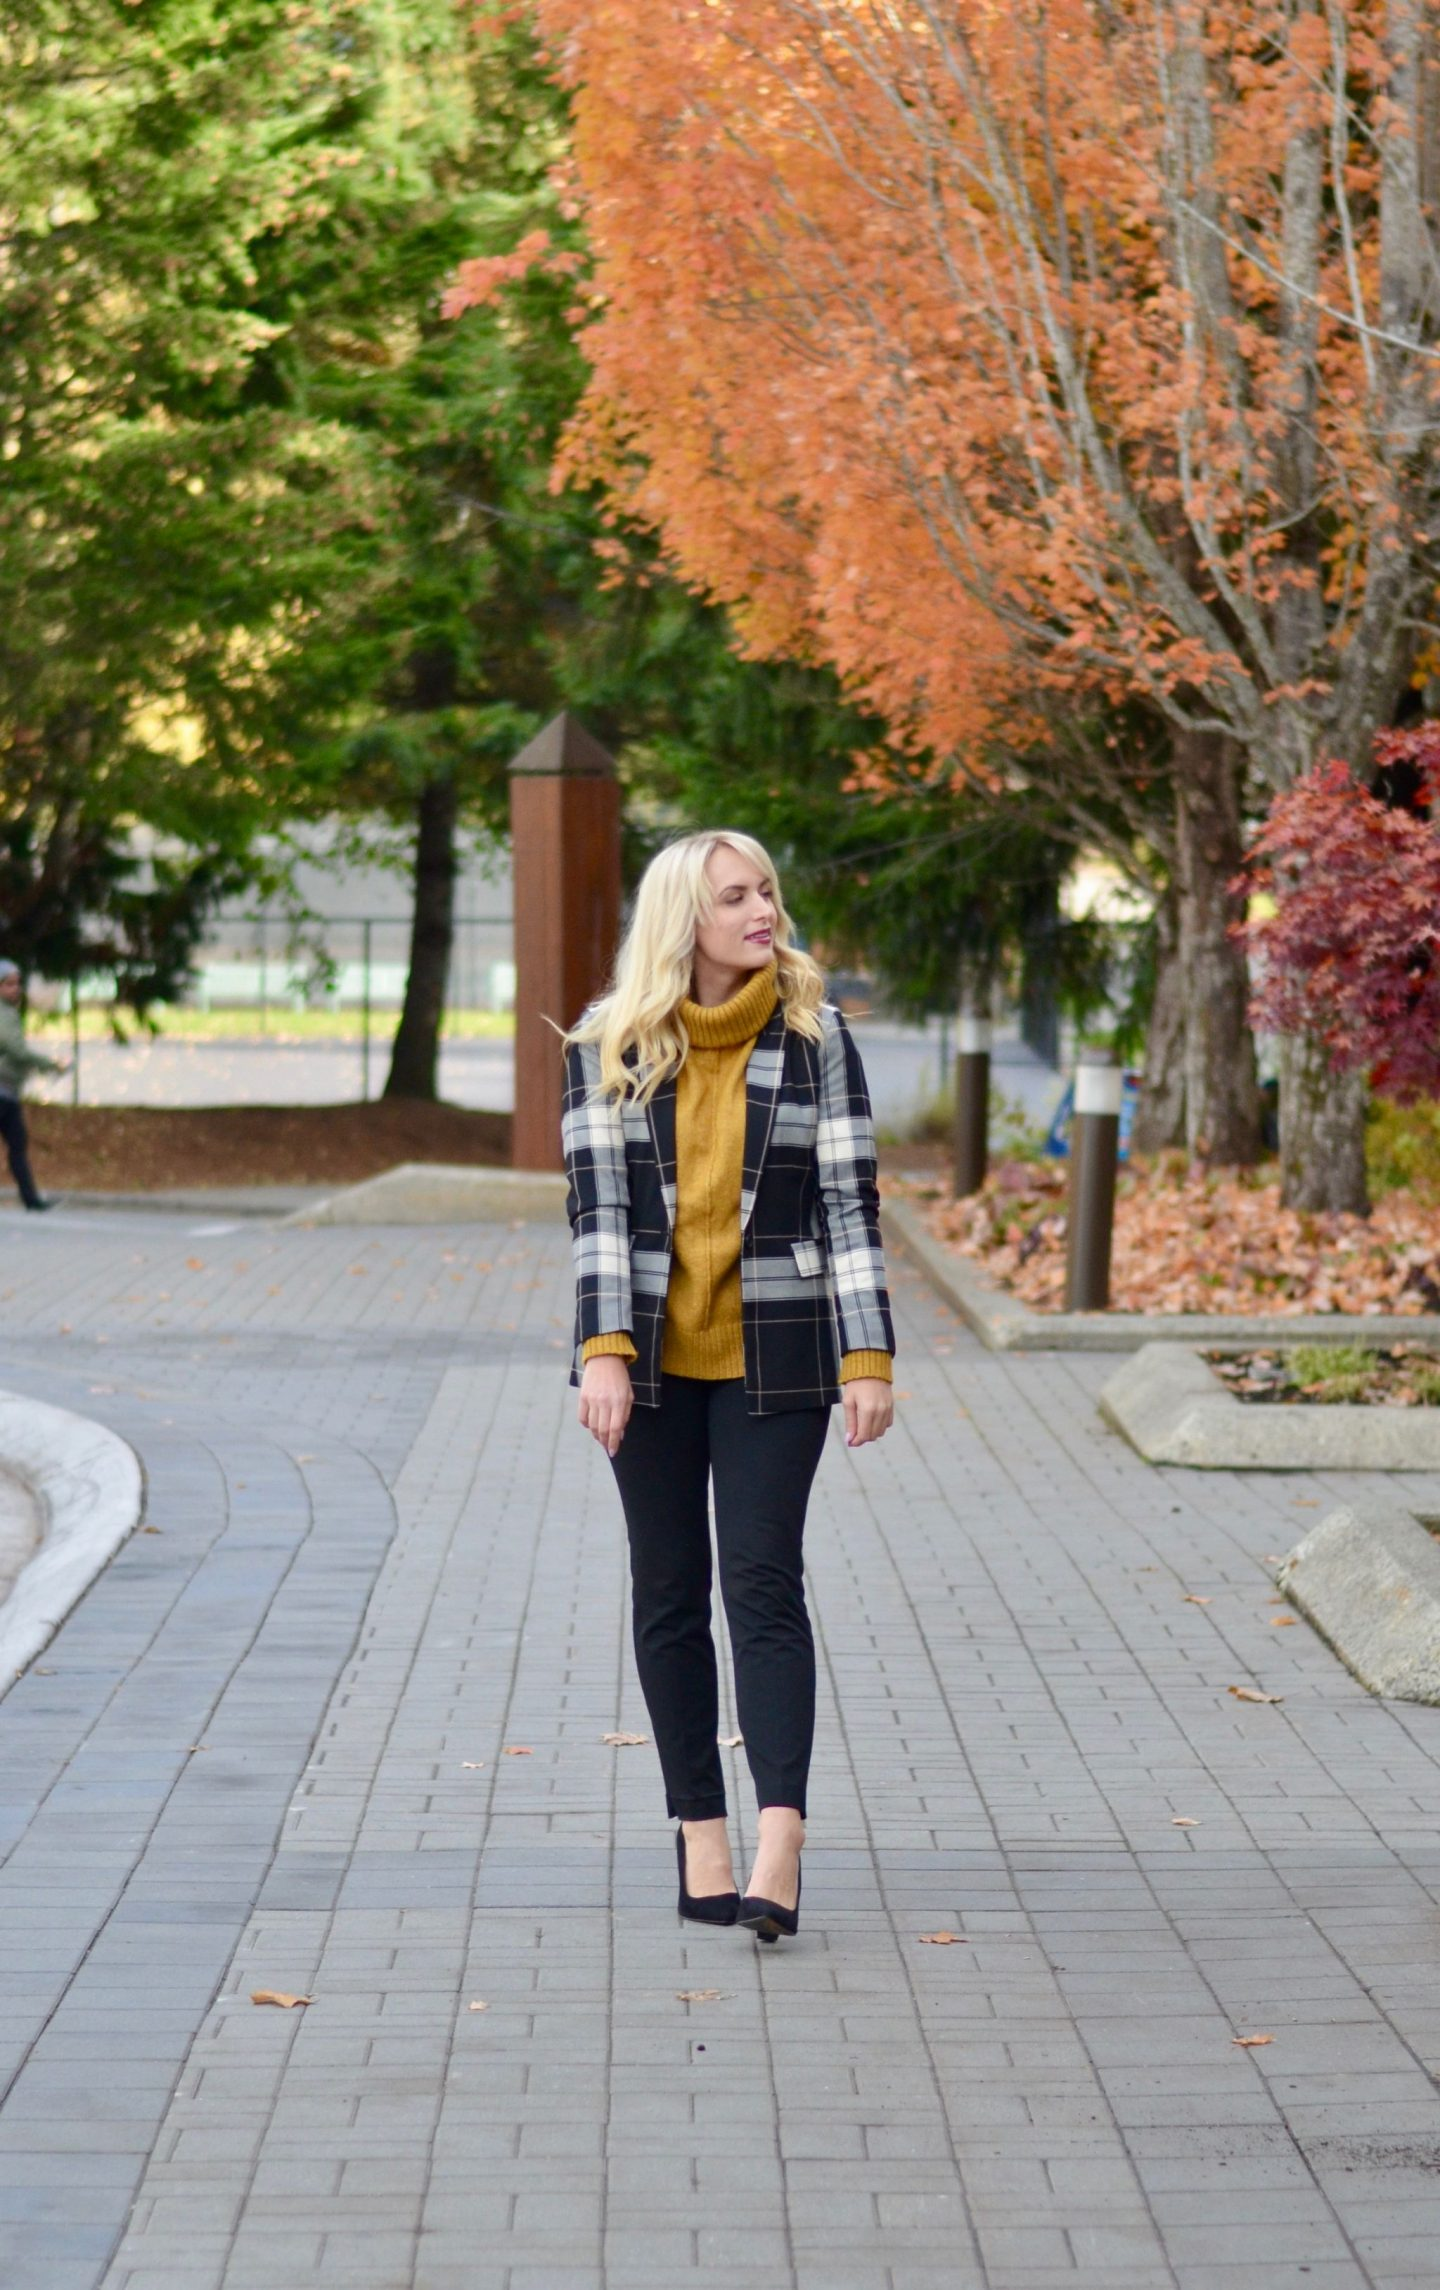 legallee blonde in mustard turtleneck - how to layer for work